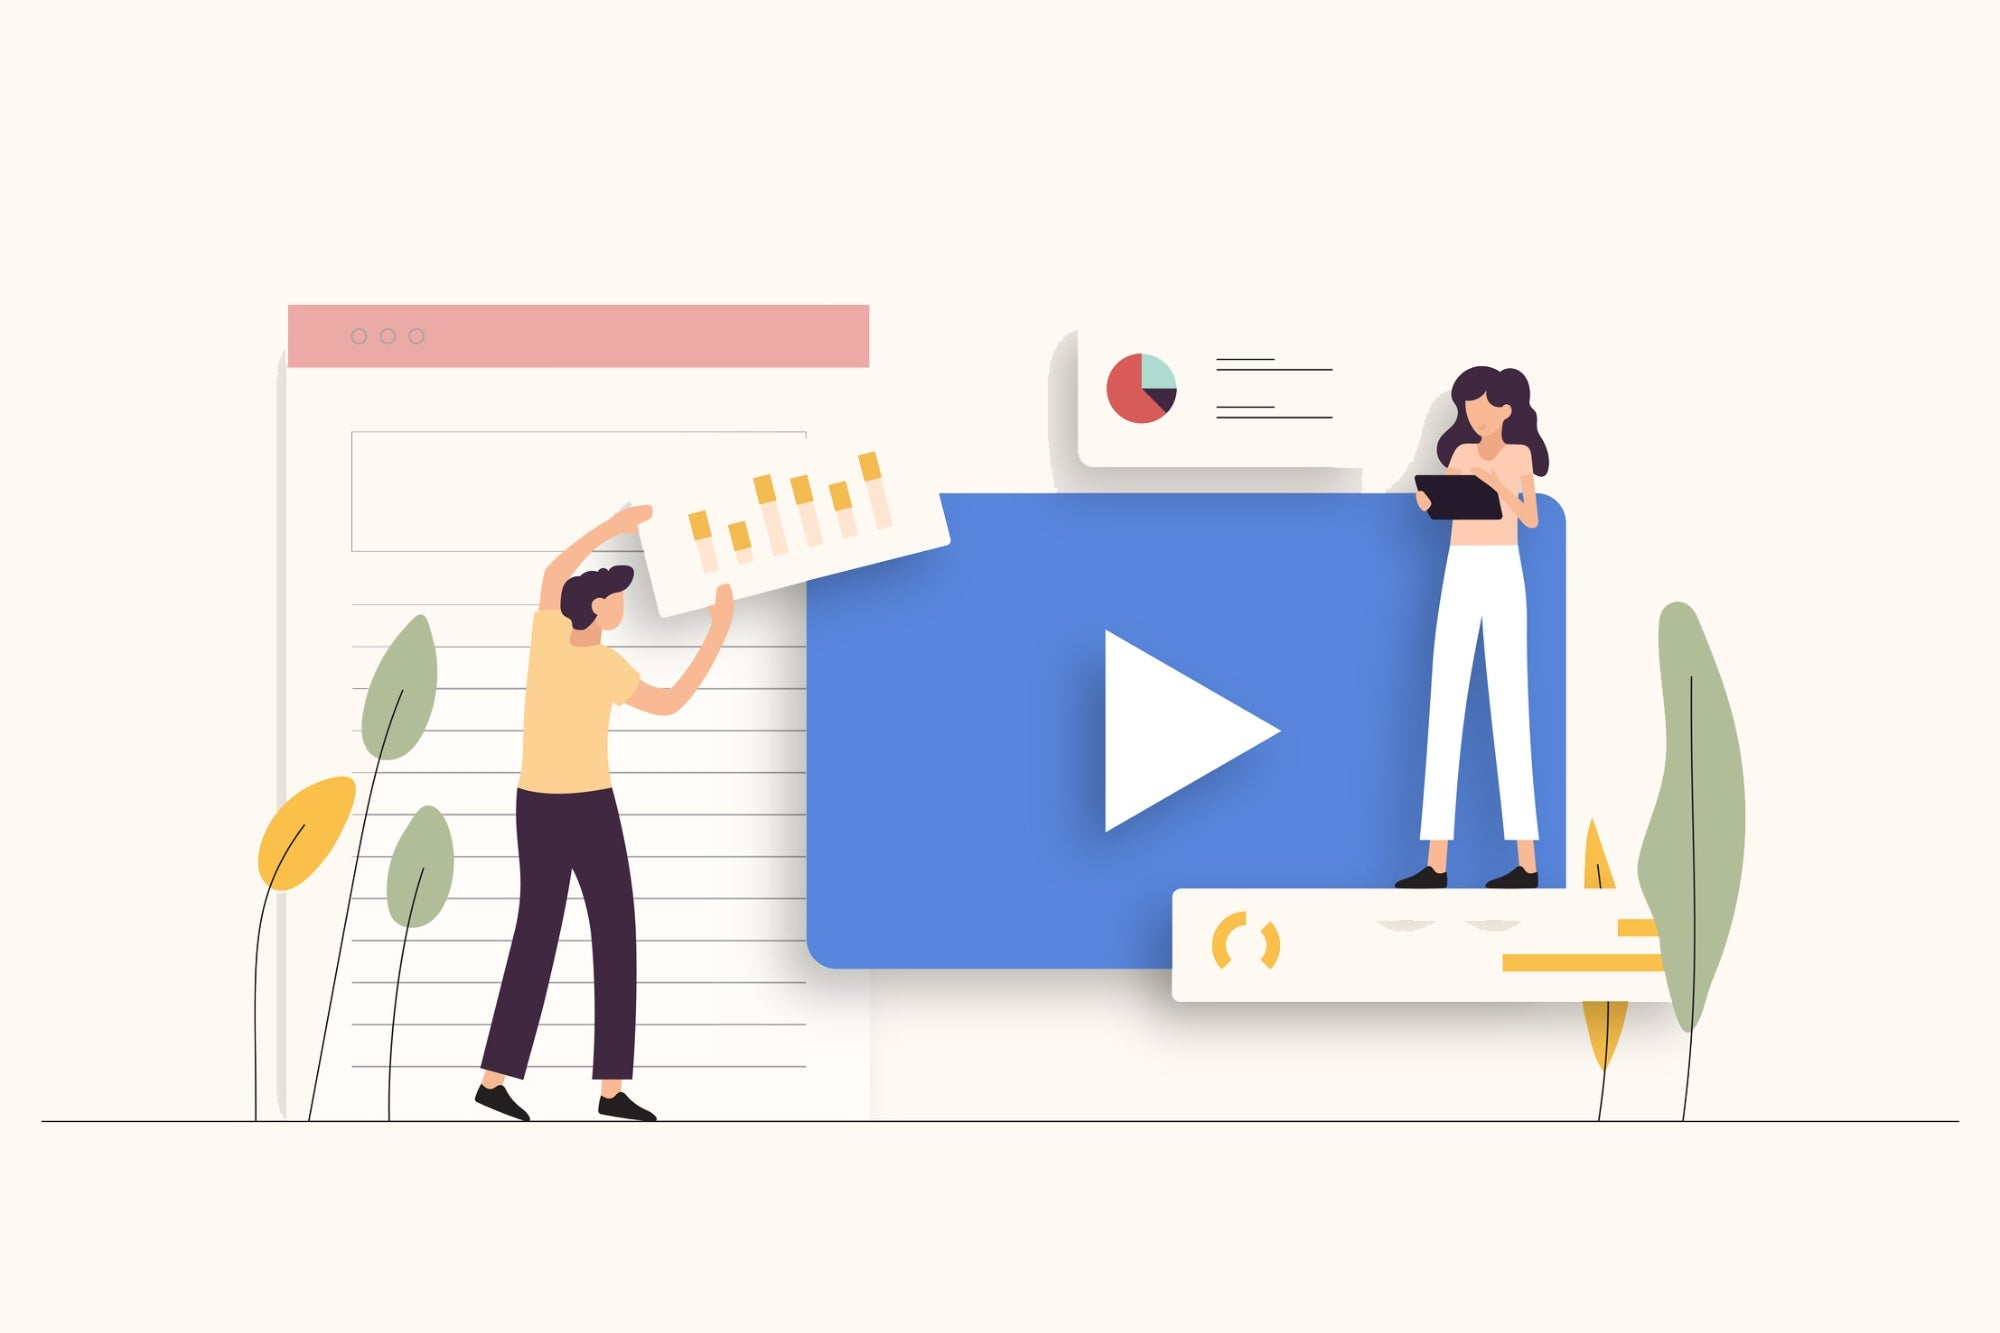 5 Most Successful Video Marketing Tactics Brands Are Using to Grab Eyeballs and Convert Customers